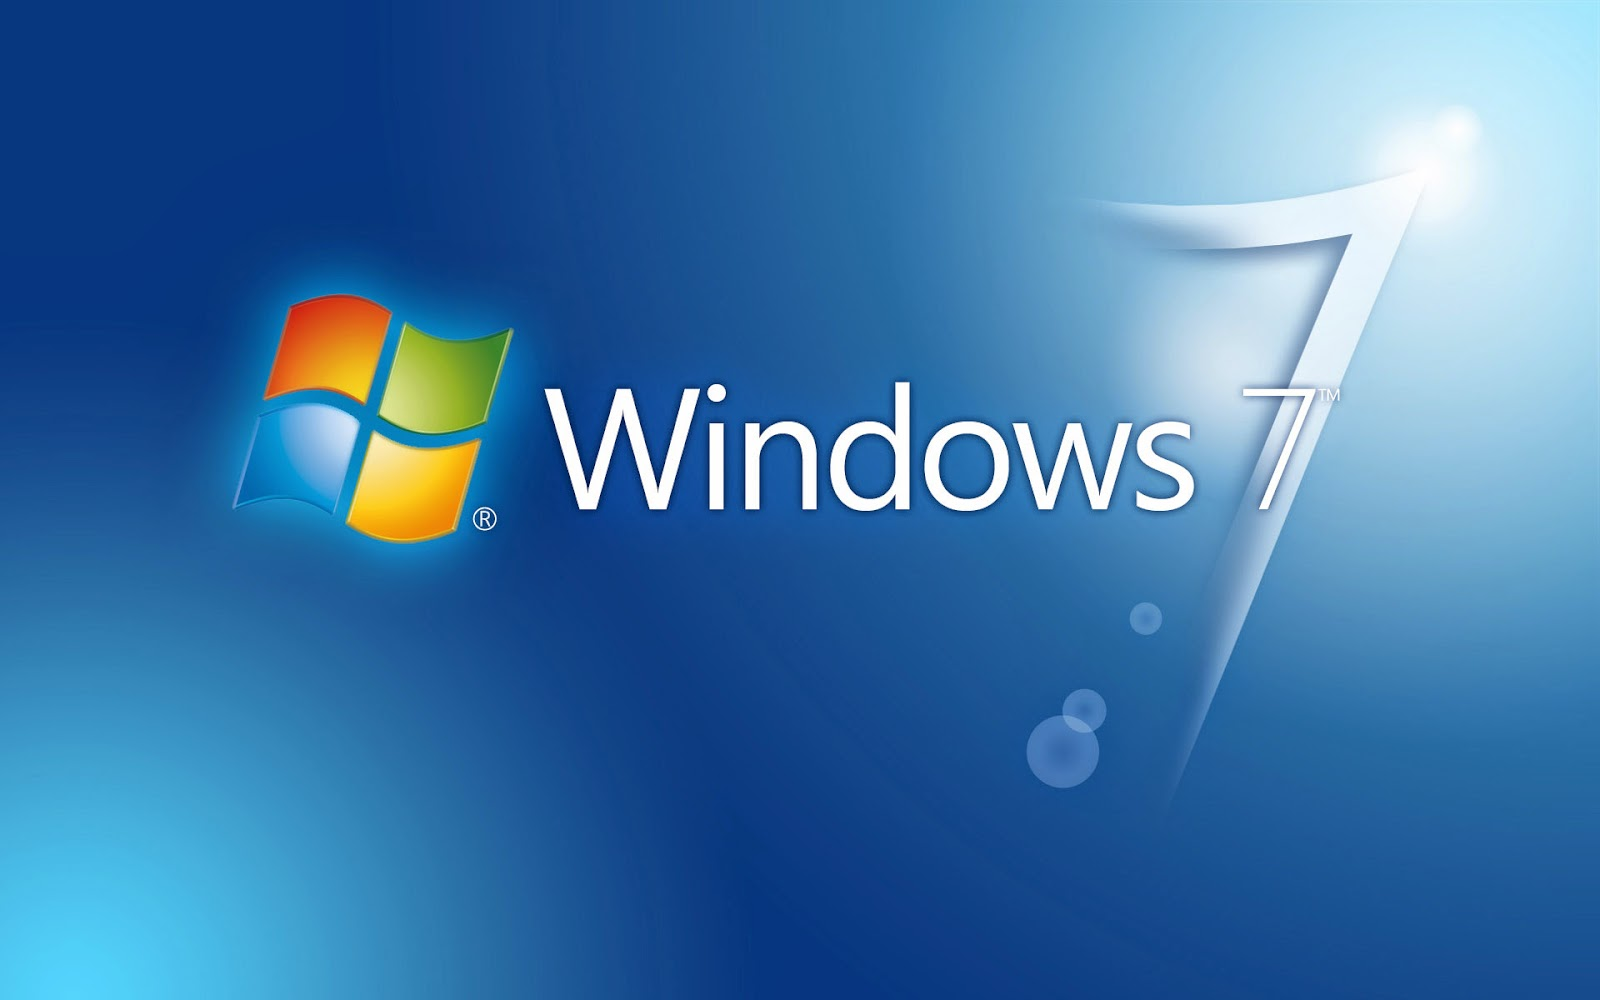 Background image windows 7 location - Windows 7 Themes Windows 7 Wallpapers Download Hd Wallpapers Windows 7 Animated Wallpapers Windows 7 Wallpapers Location Windows 7 Live Wallpapers